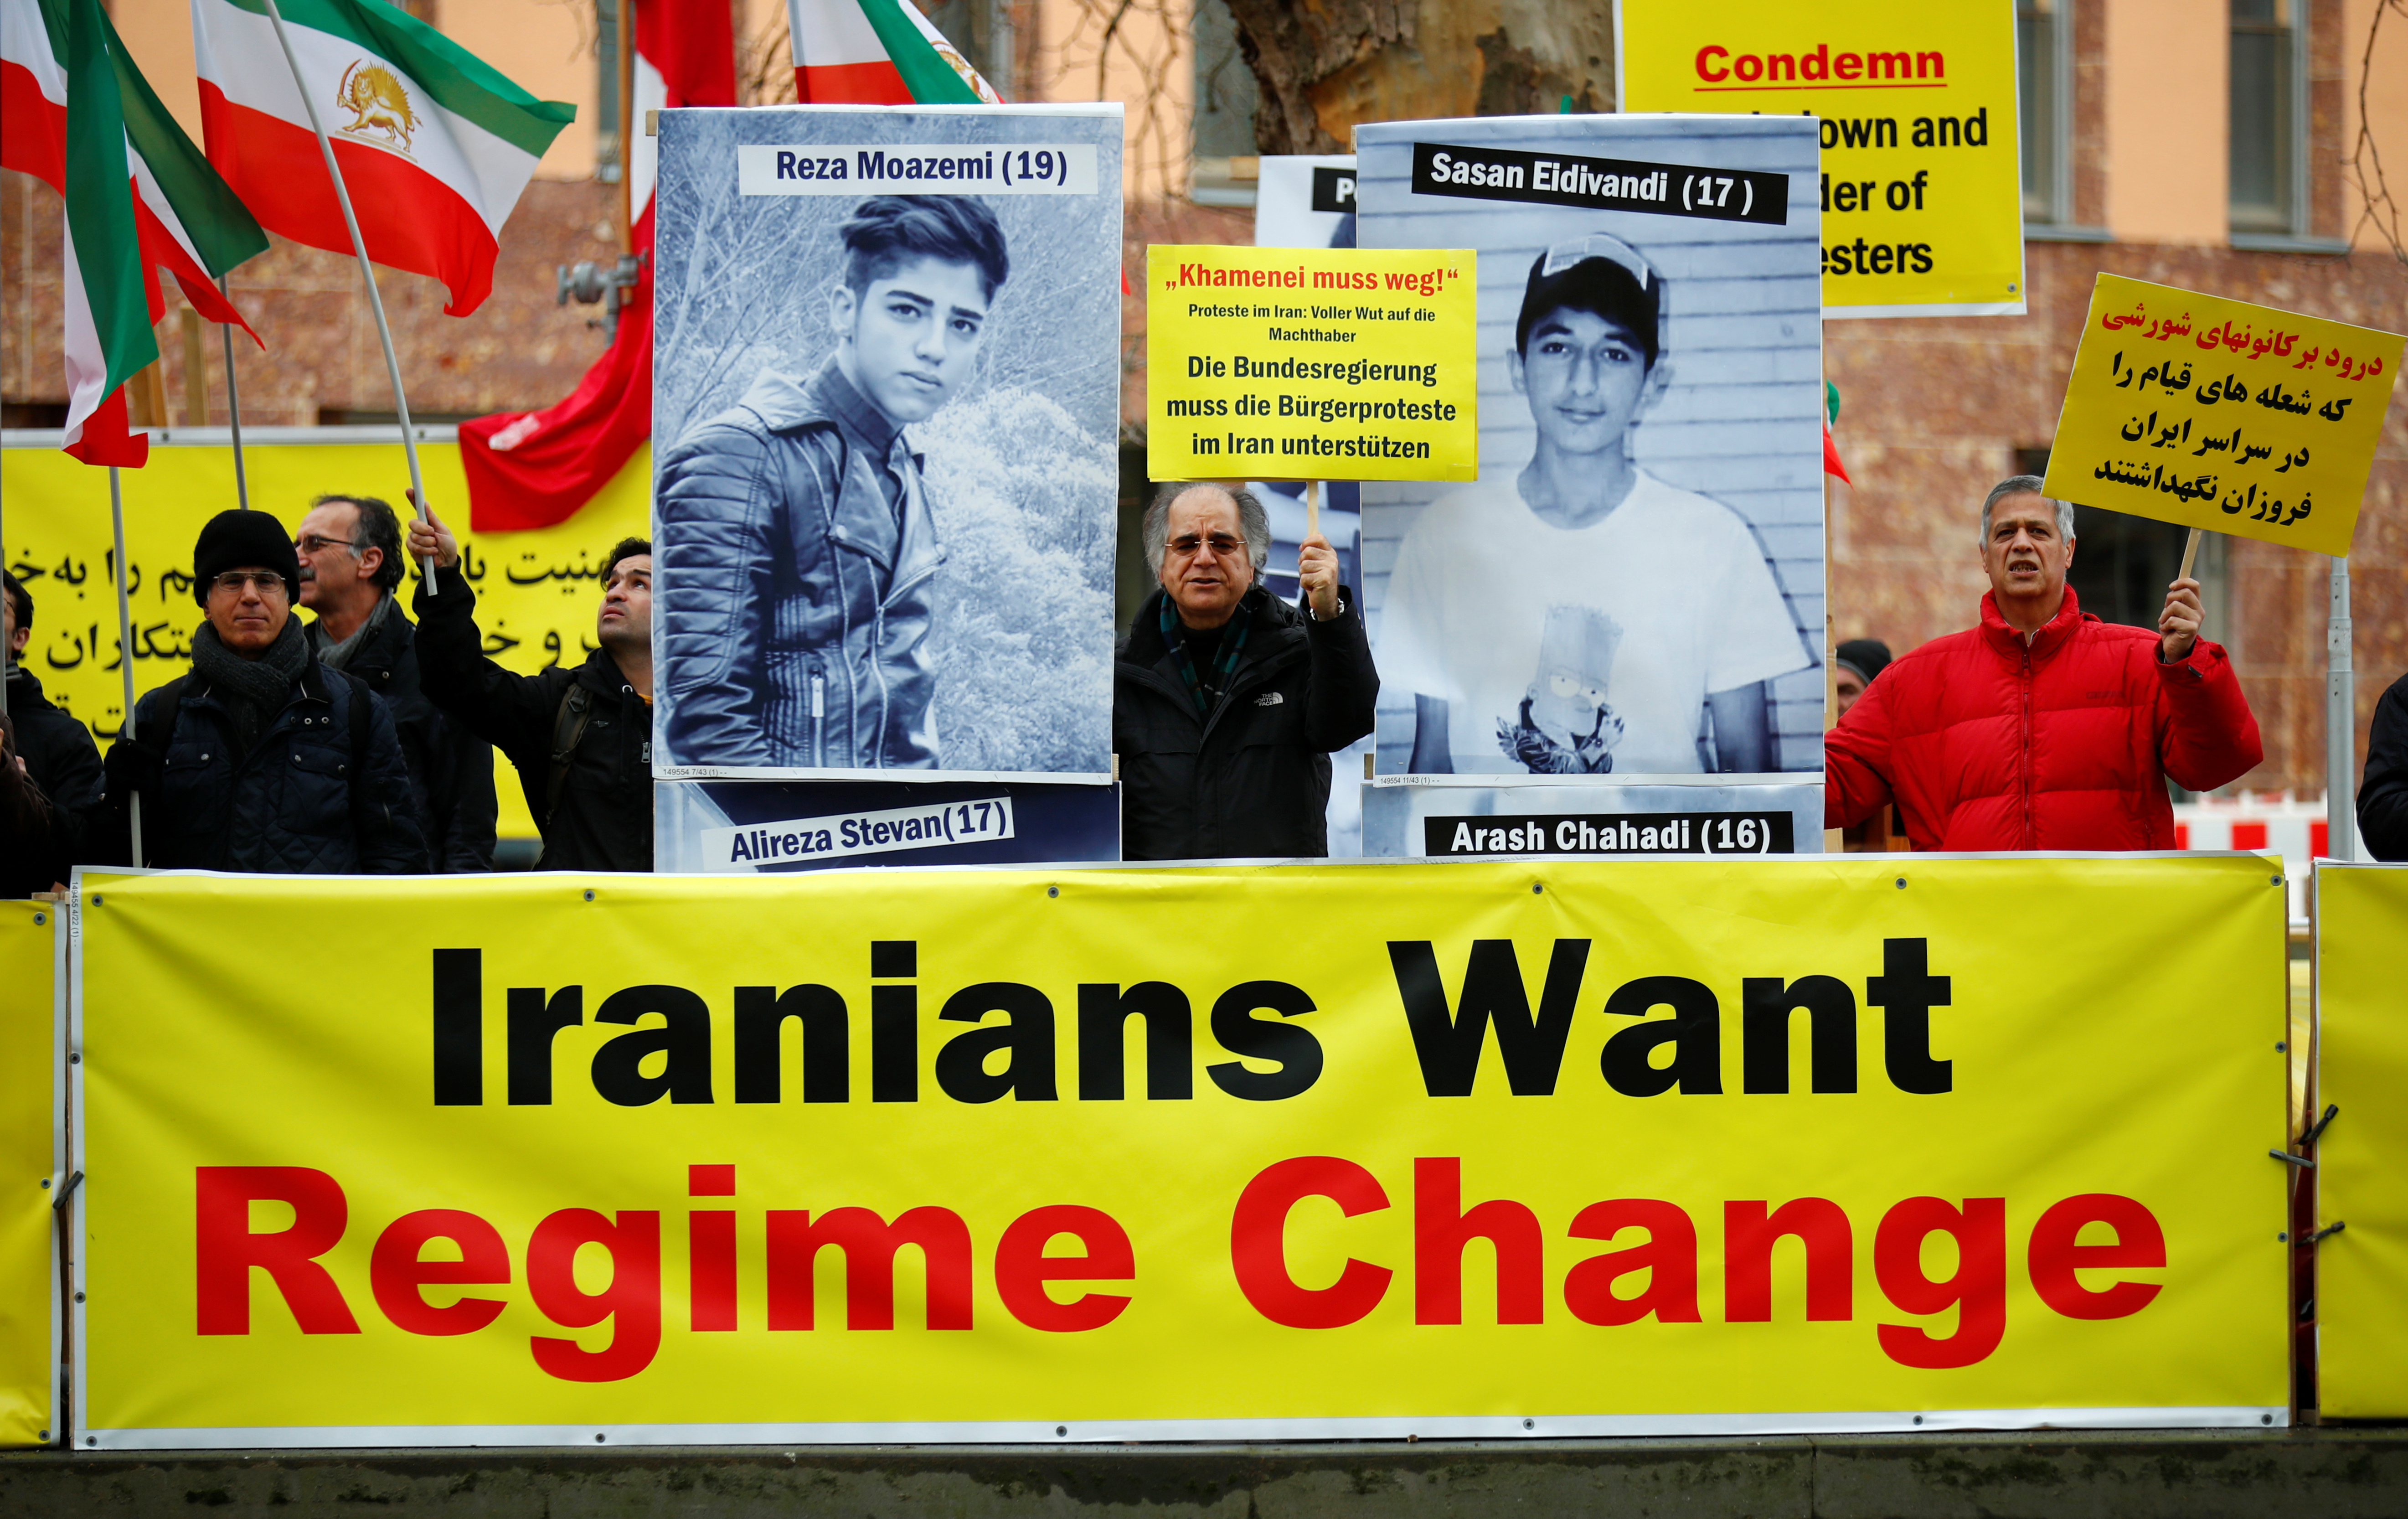 Activists protest against Iranian government in front of German Federal Foreign Office after a Ukrainian passenger plane crashed in Iran, in Berlin, Germany, January 13, 2020. REUTERS/Hannibal Hanschke